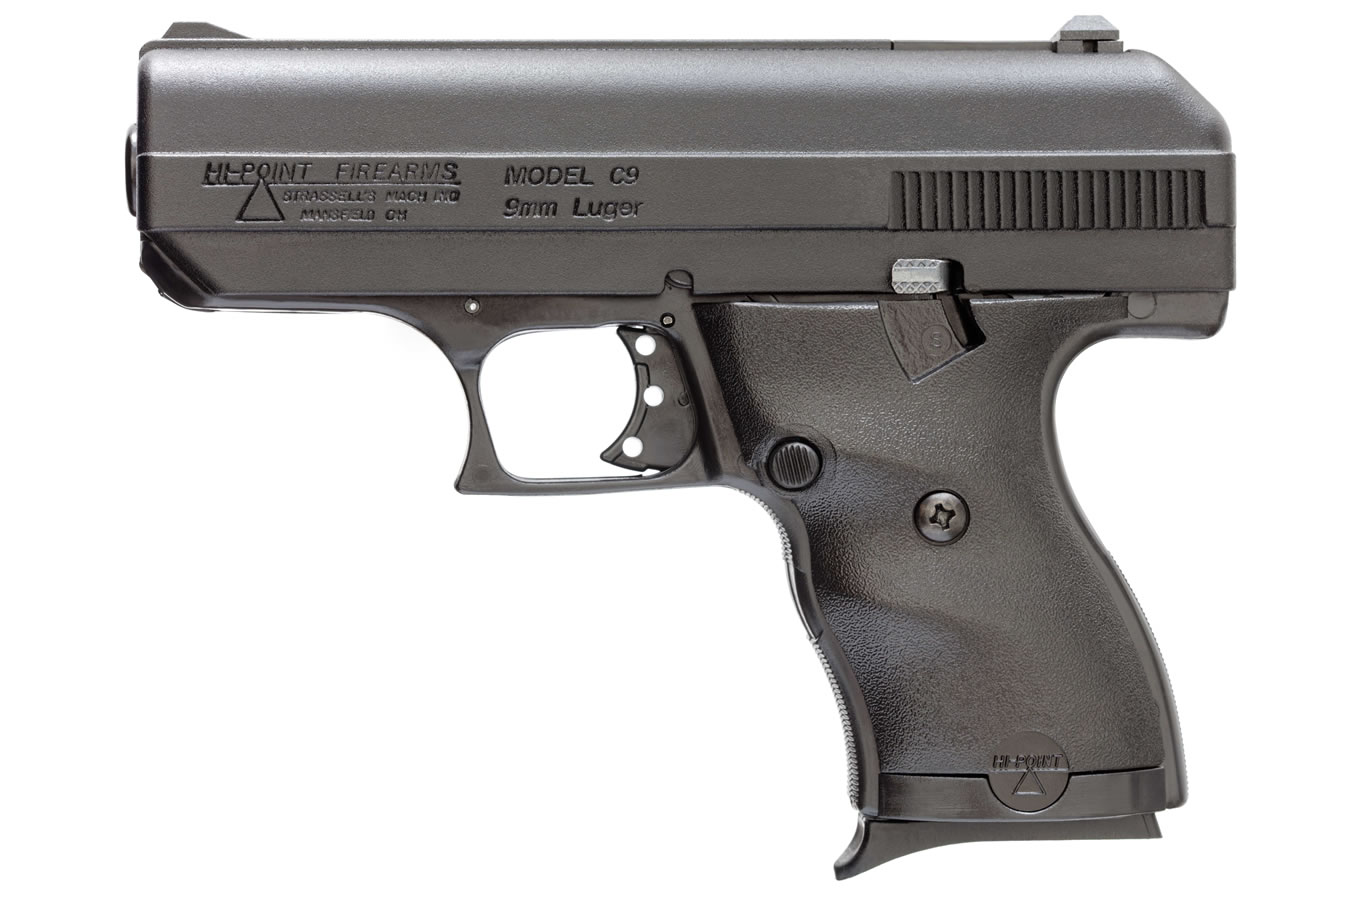 No. 12 Best Selling: HI POINT C-9 9MM PISTOL